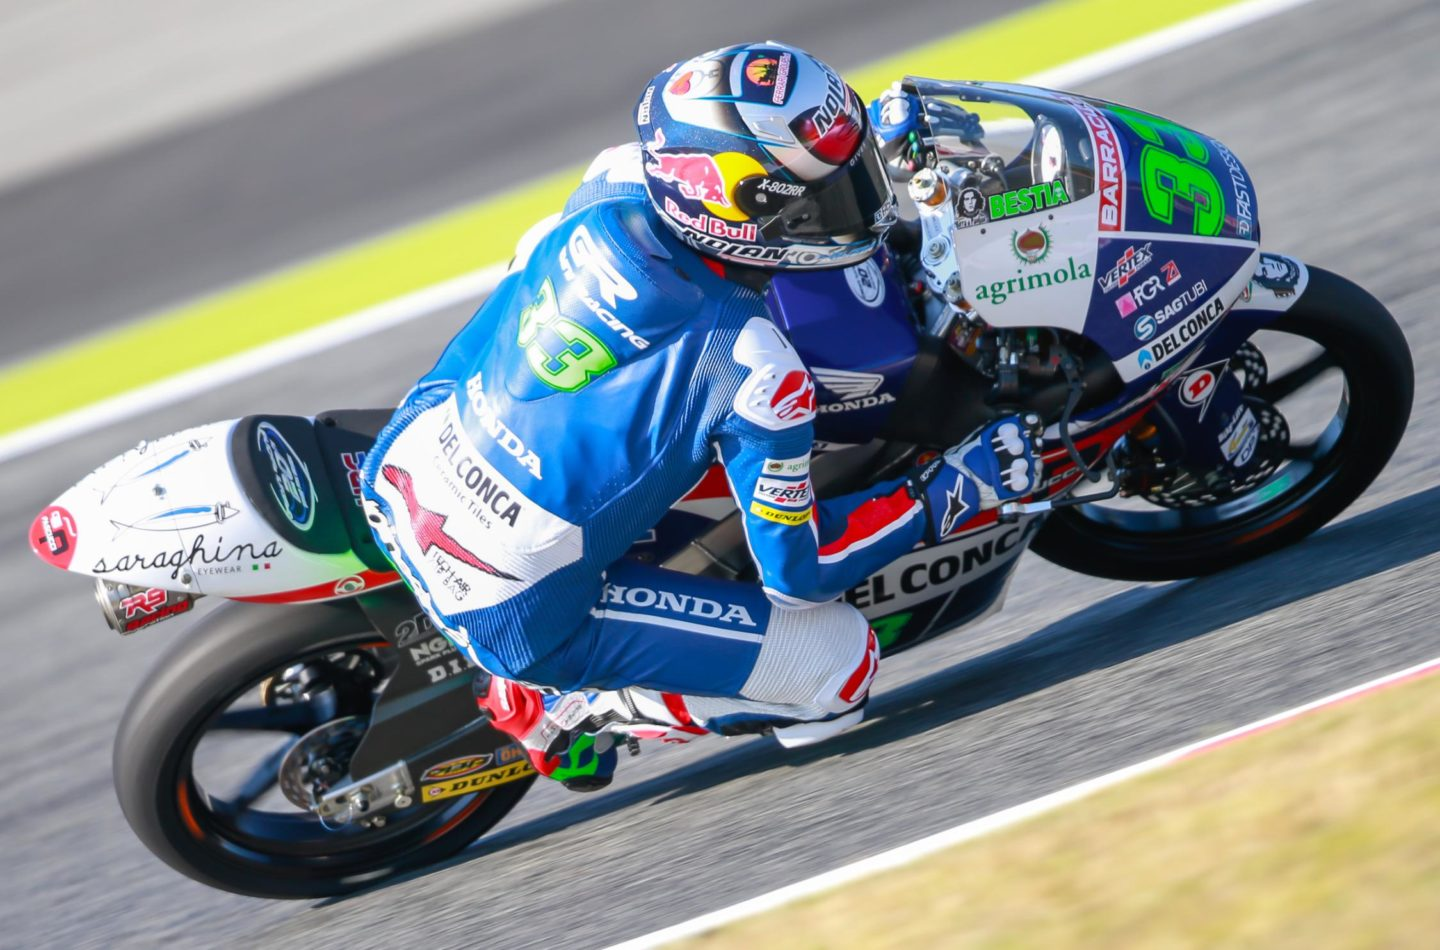 Motomondiale, GP Aragona: Lowes e Bastianini in pole in Moto2 e Moto3